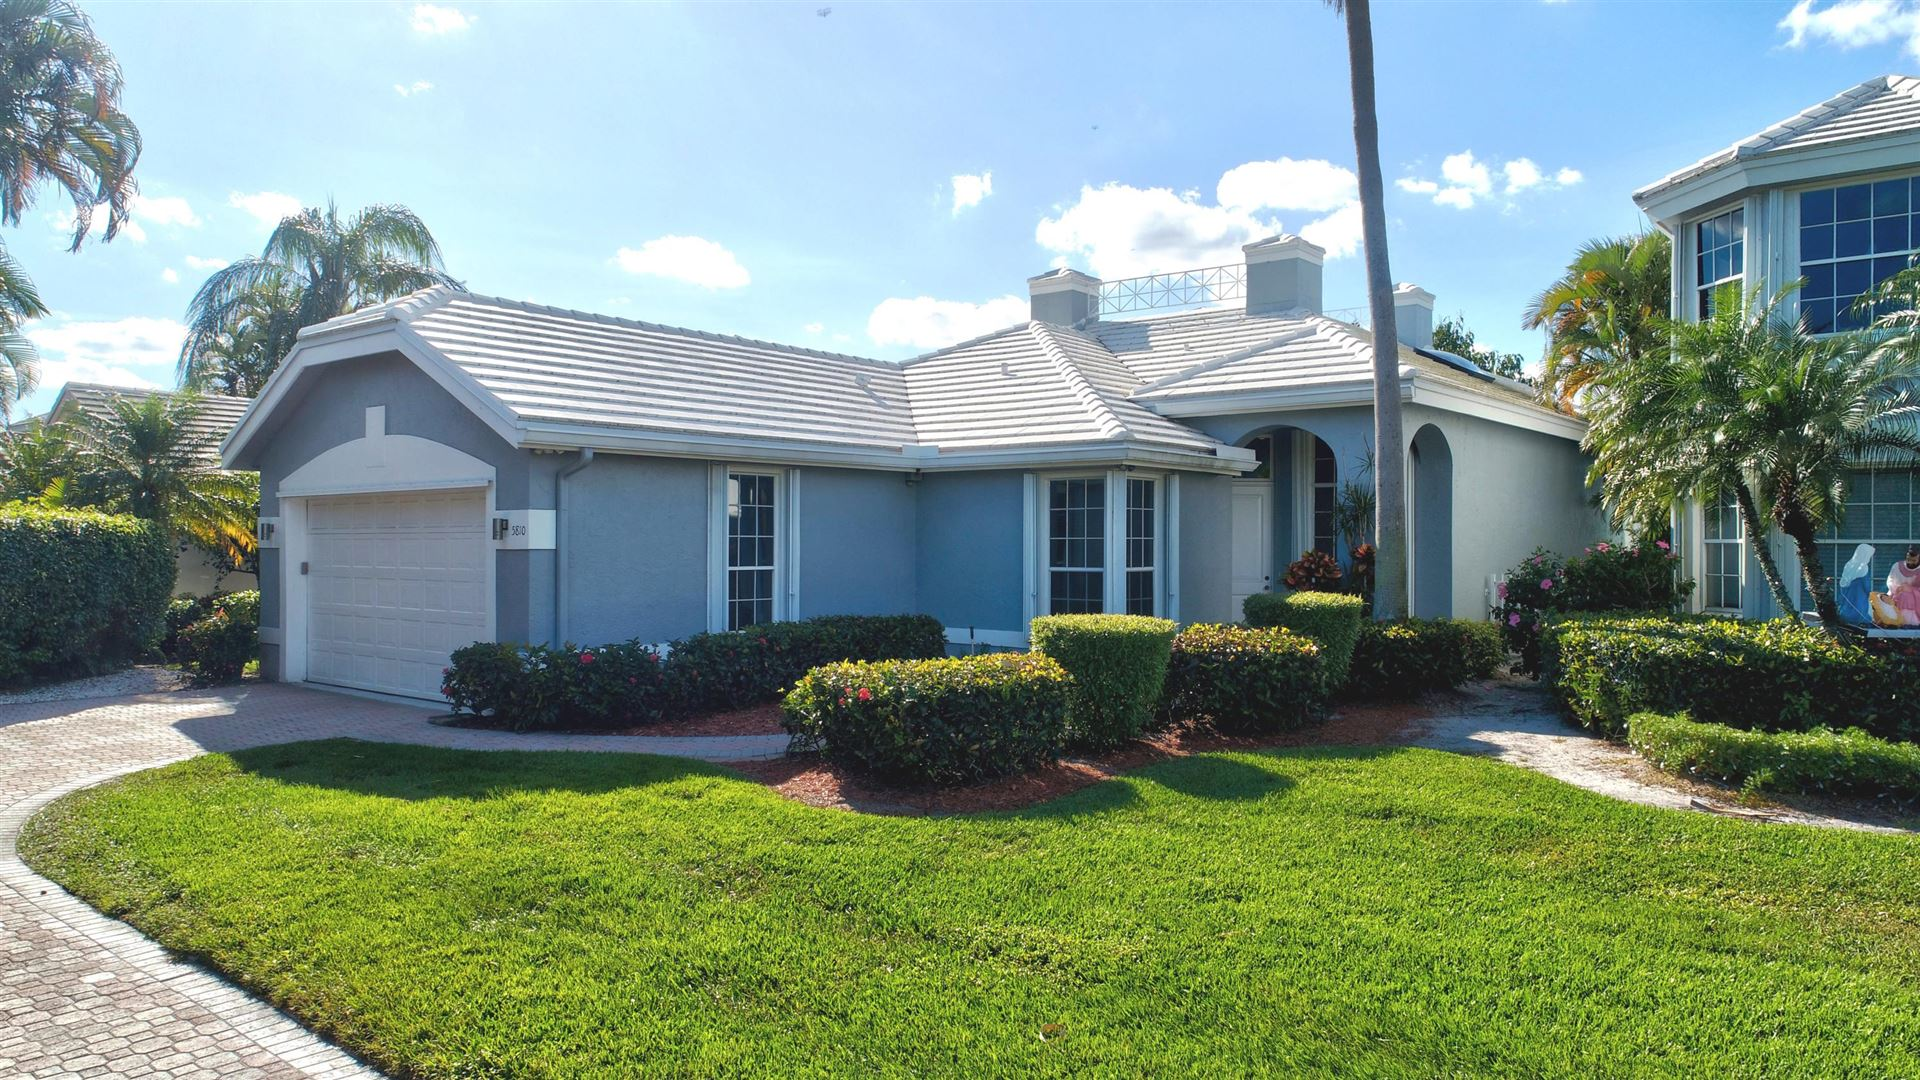 5810 NW 42nd Terrace, Boca Raton, FL 33496 - #: RX-10685916